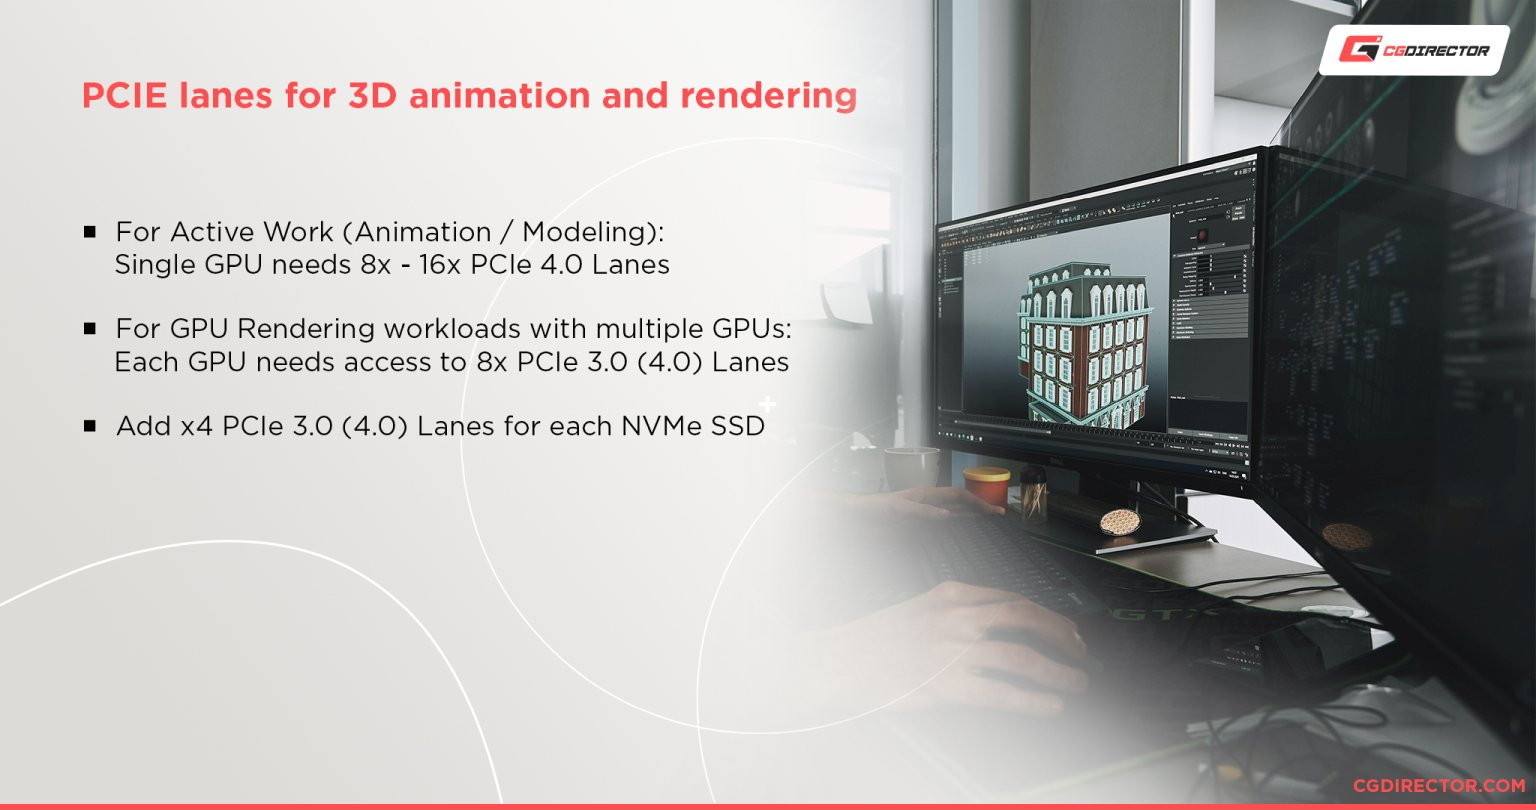 Required PCIE lanes for 3D animation and rendering